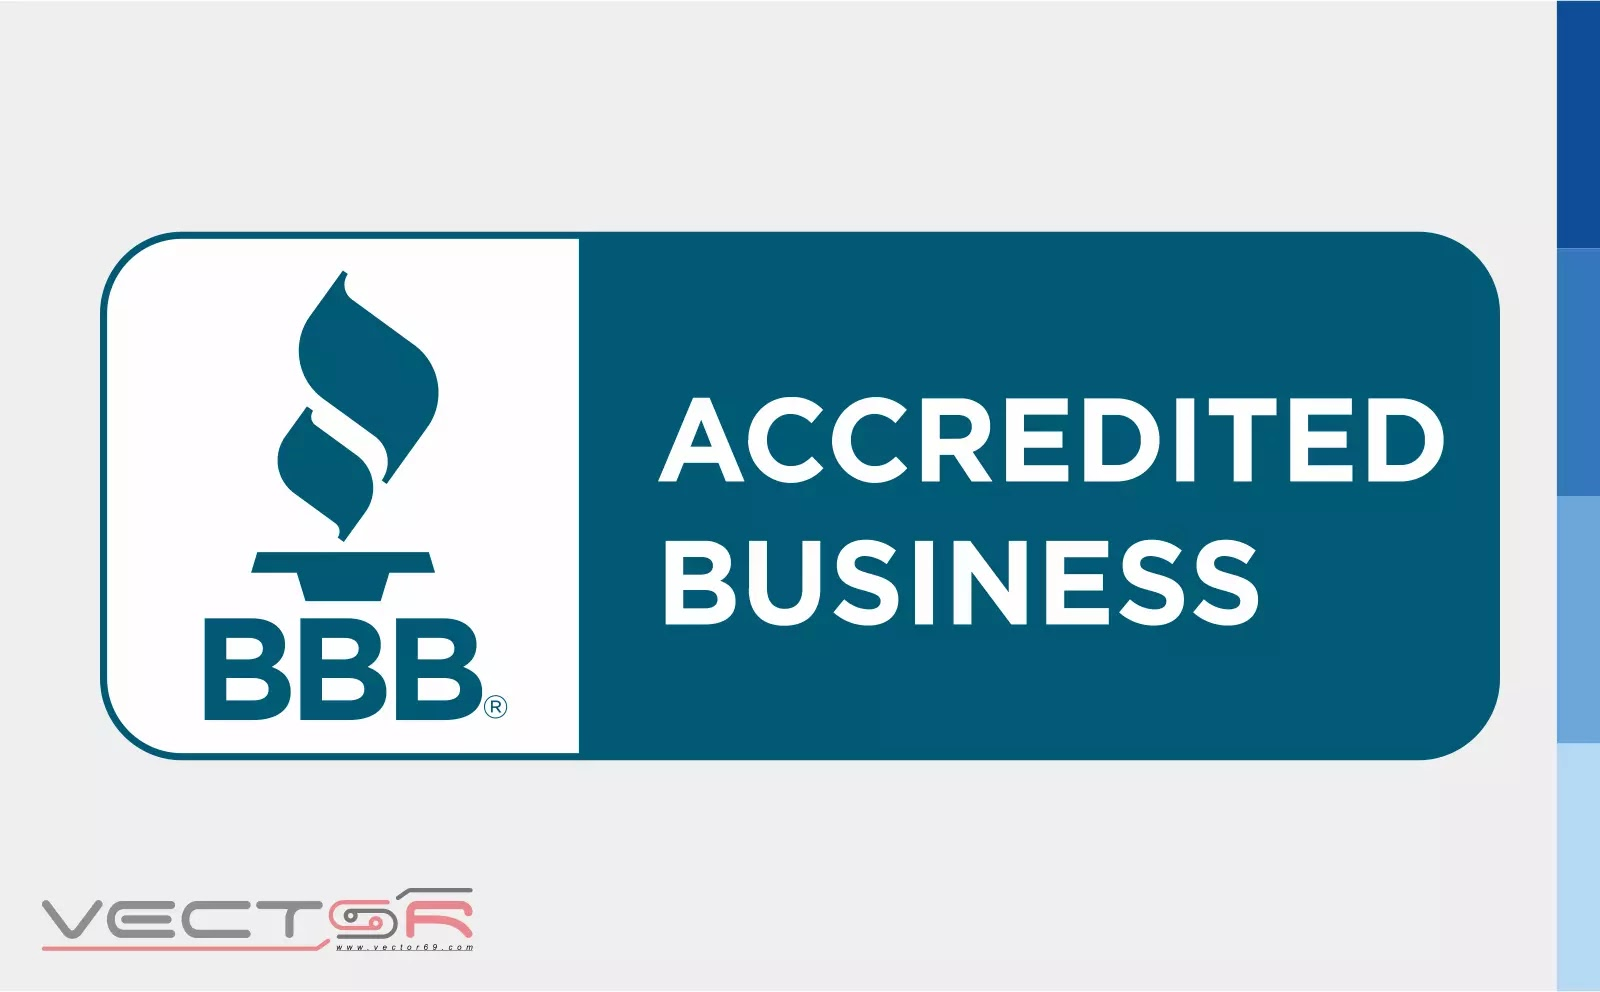 BBB Accredited Business Horizontal Seal - Download Vector File Encapsulated PostScript (.EPS)